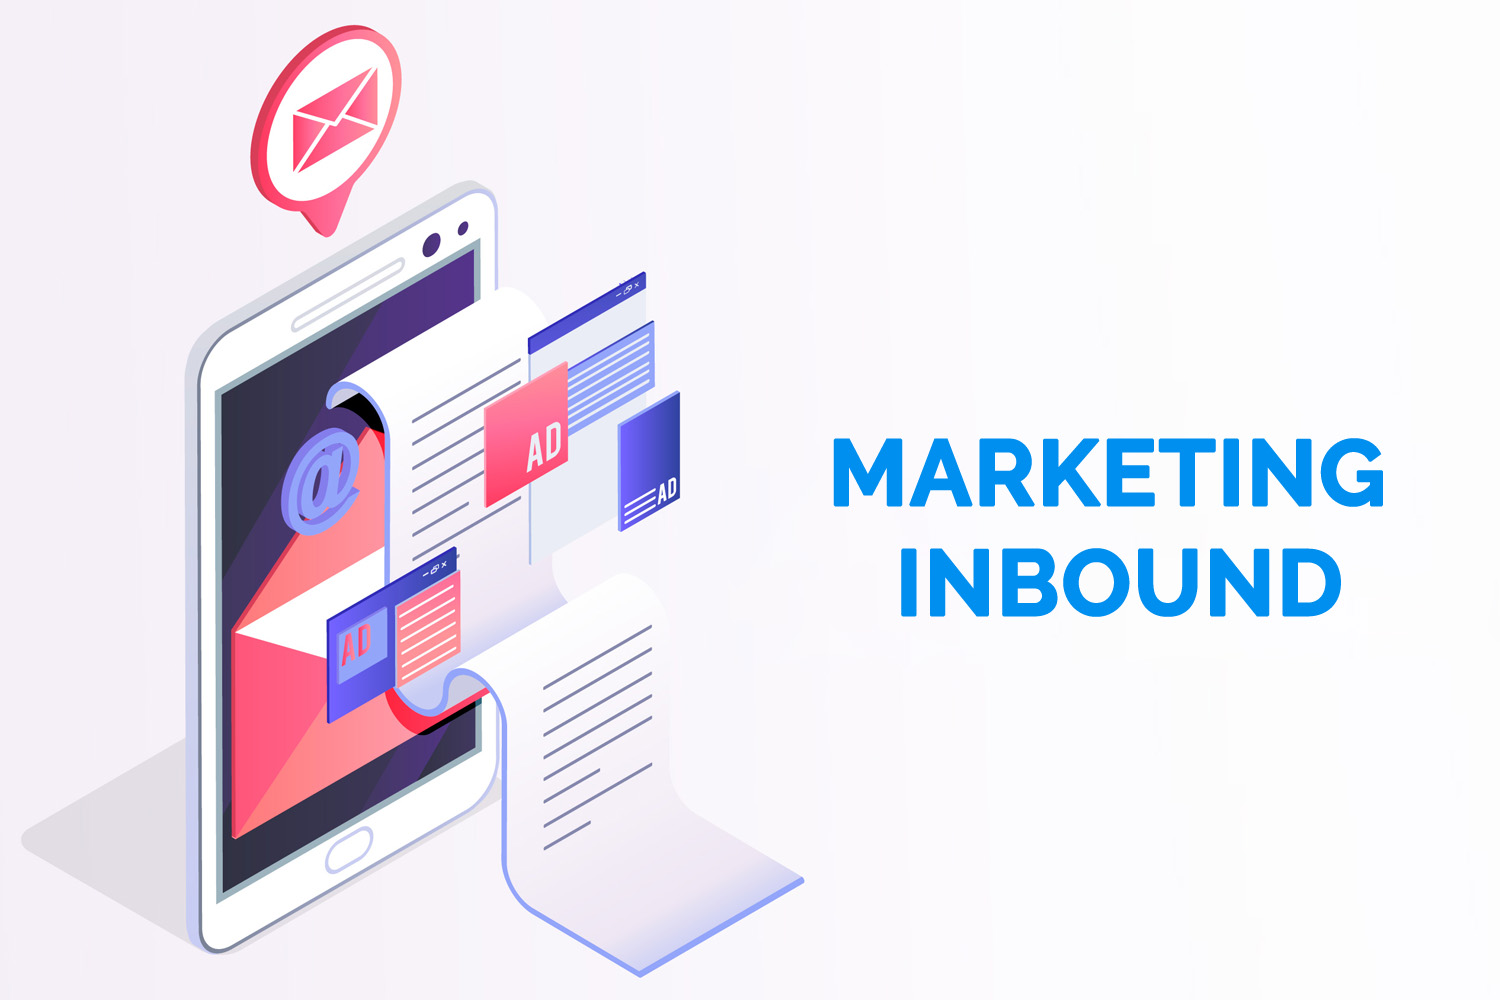 Marketing Inbound - Agentie Marketing Timisoara - Inkon Agency - Servicii de Marketing - Totul despre marketing